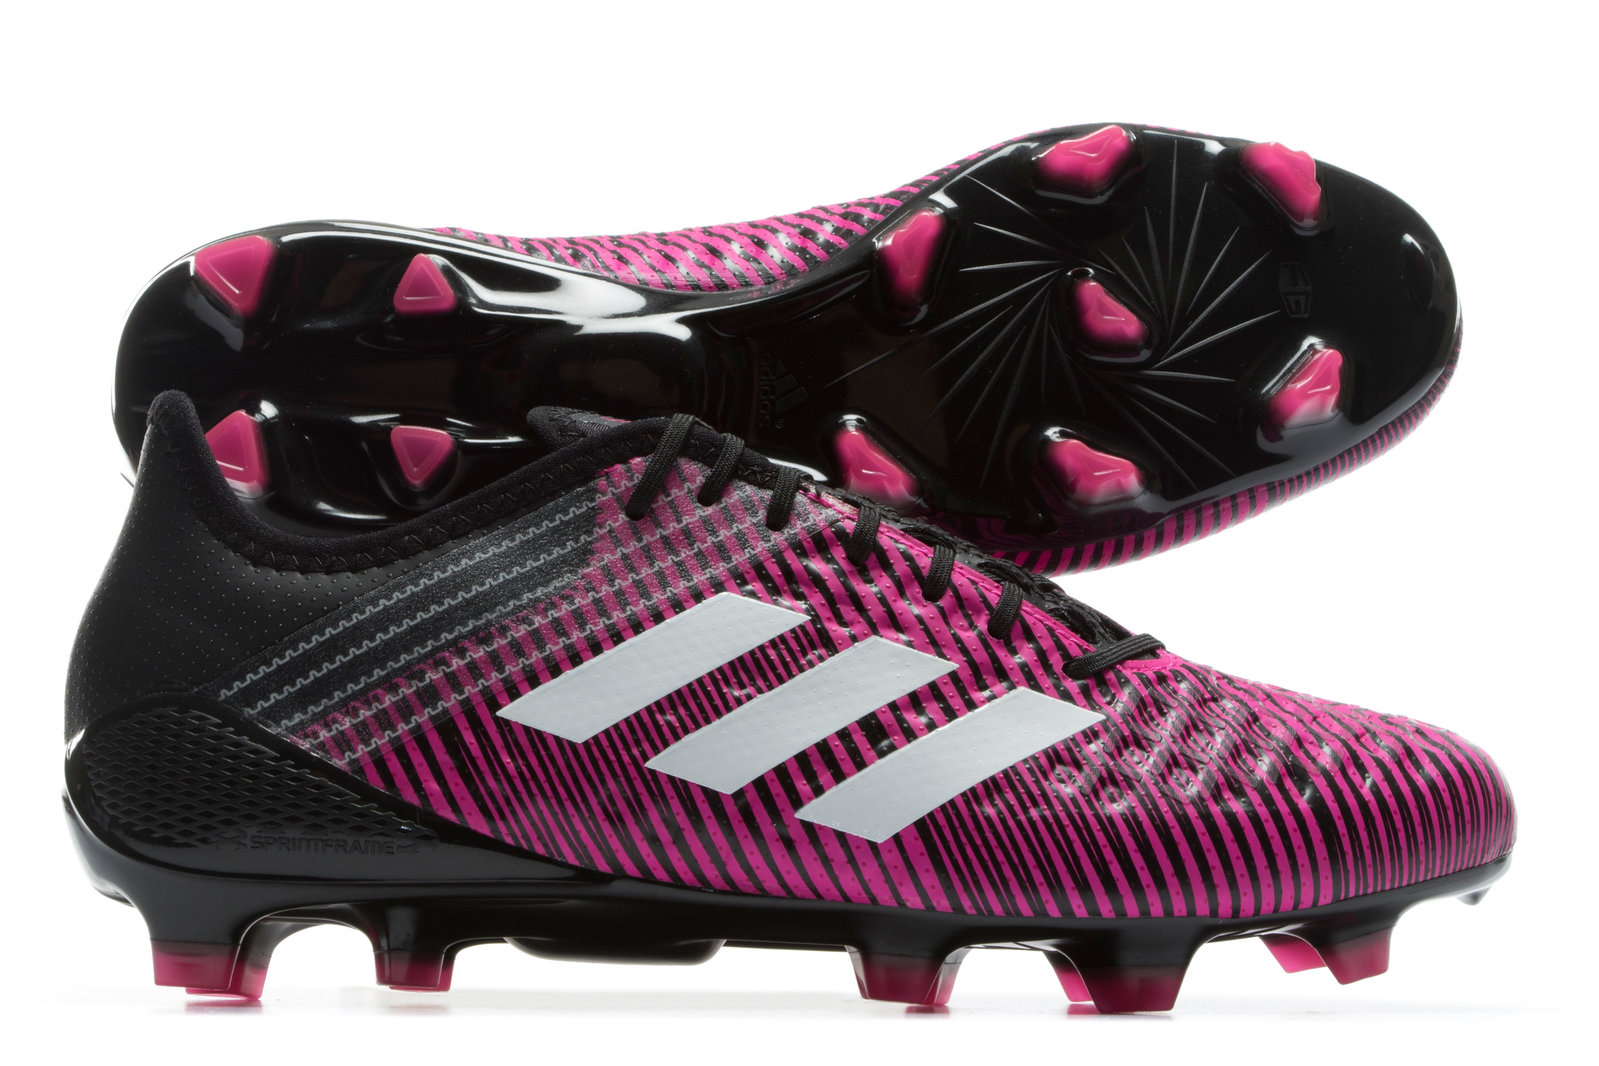 522e59318ae1 adidas Mens Predator Malice Control FG Rugby Boots Sports Shoes Studs Pink